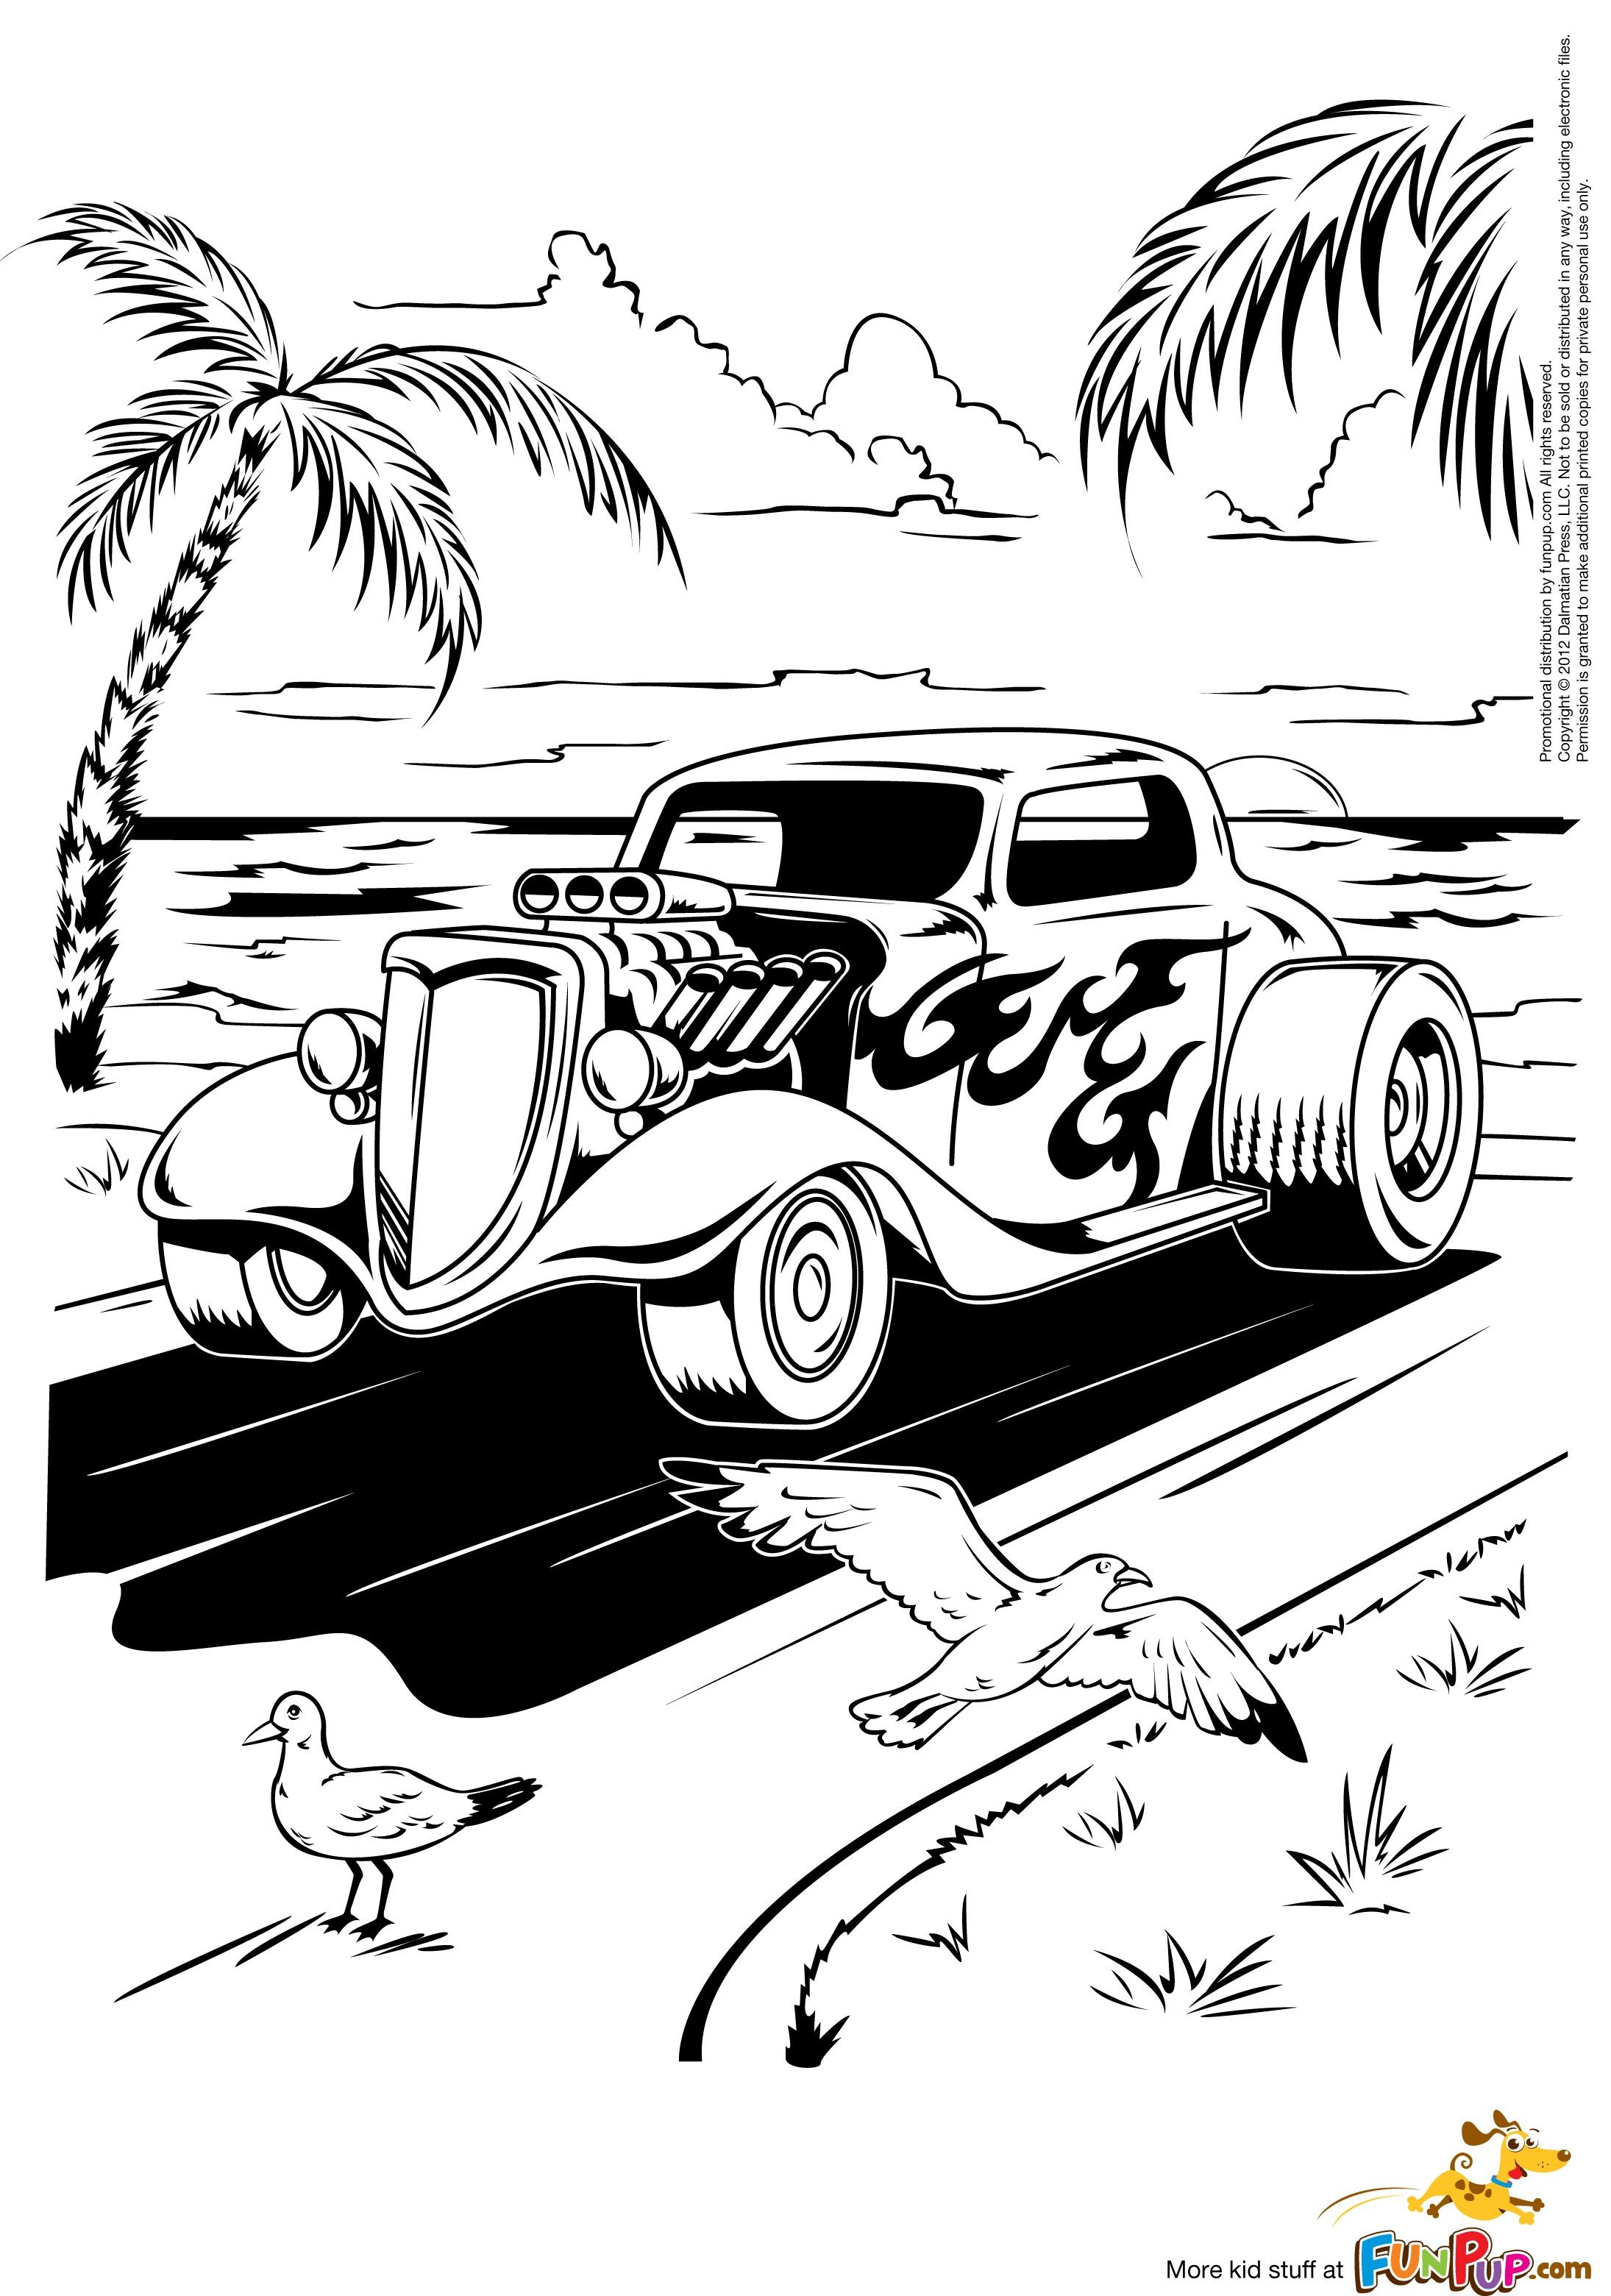 rod coloring page free printable coloring pages pinterest